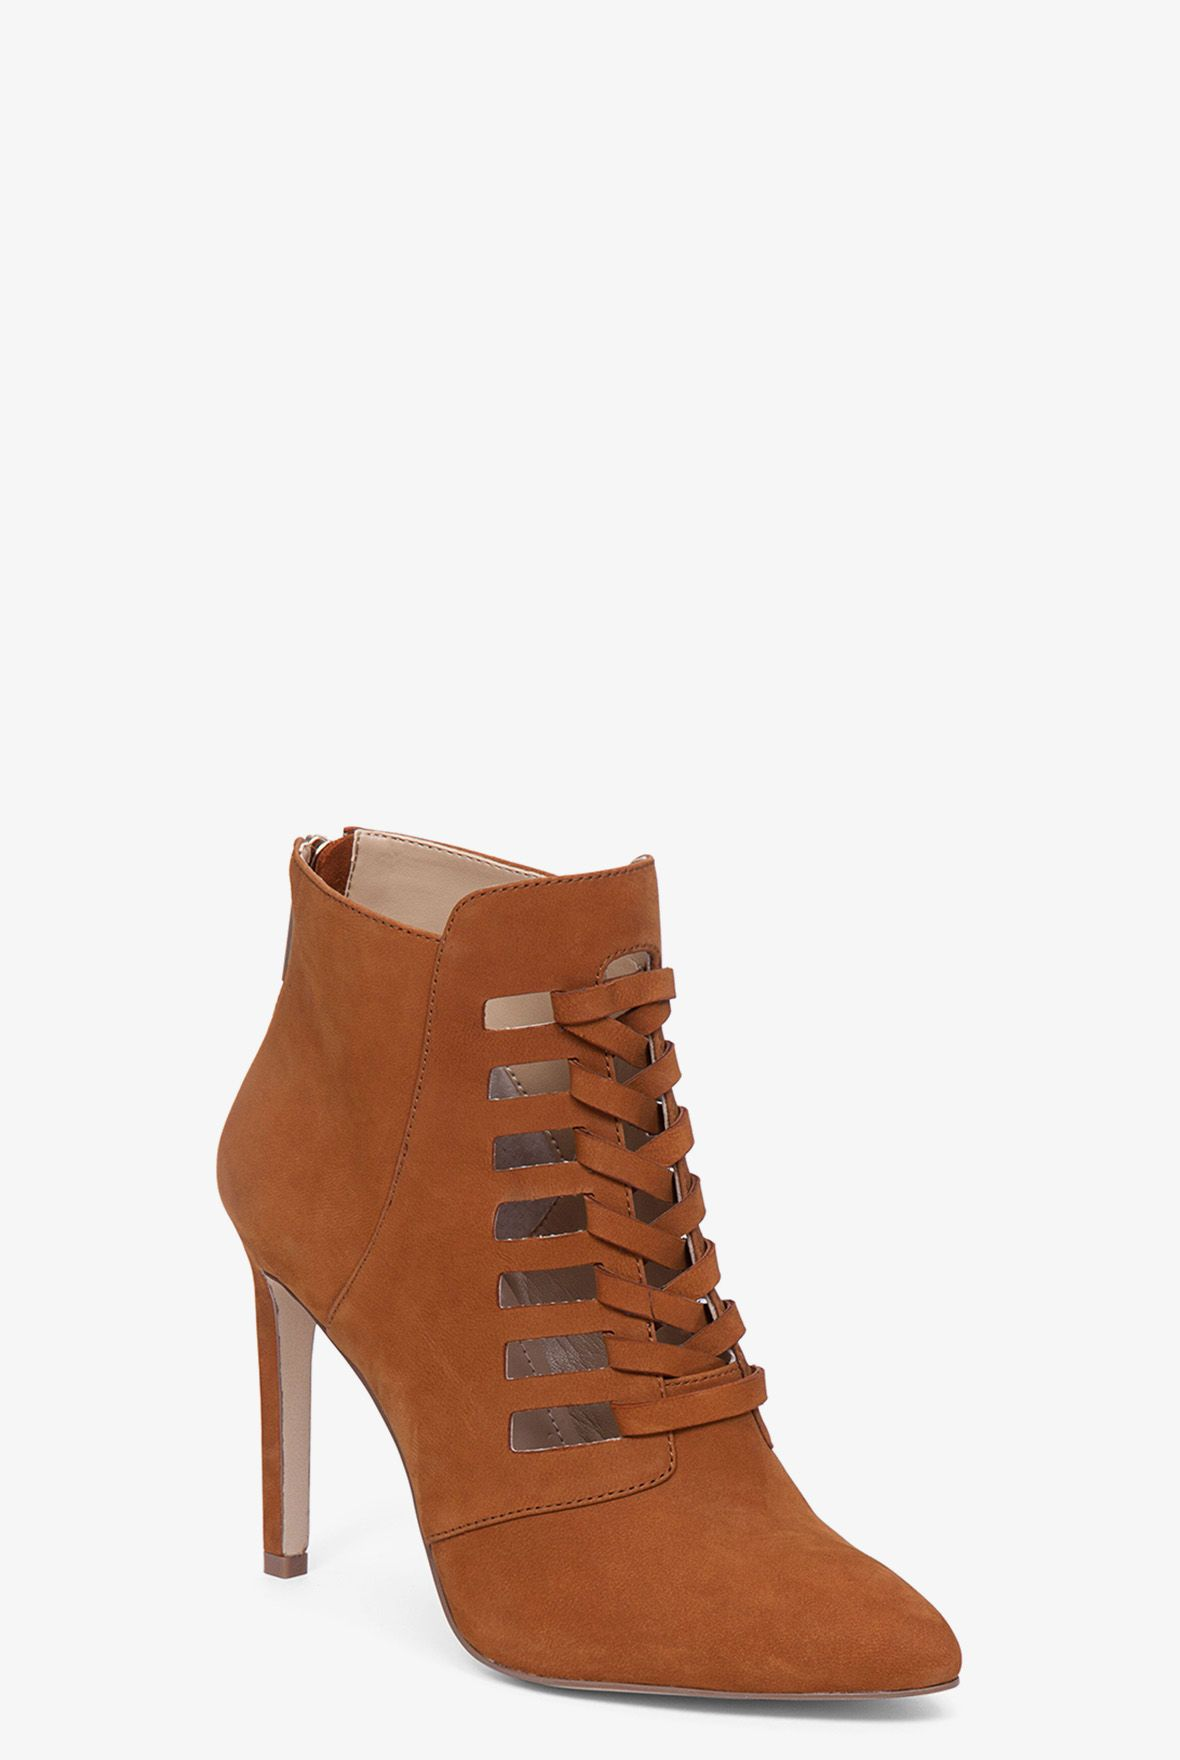 null null - Coy Bootie